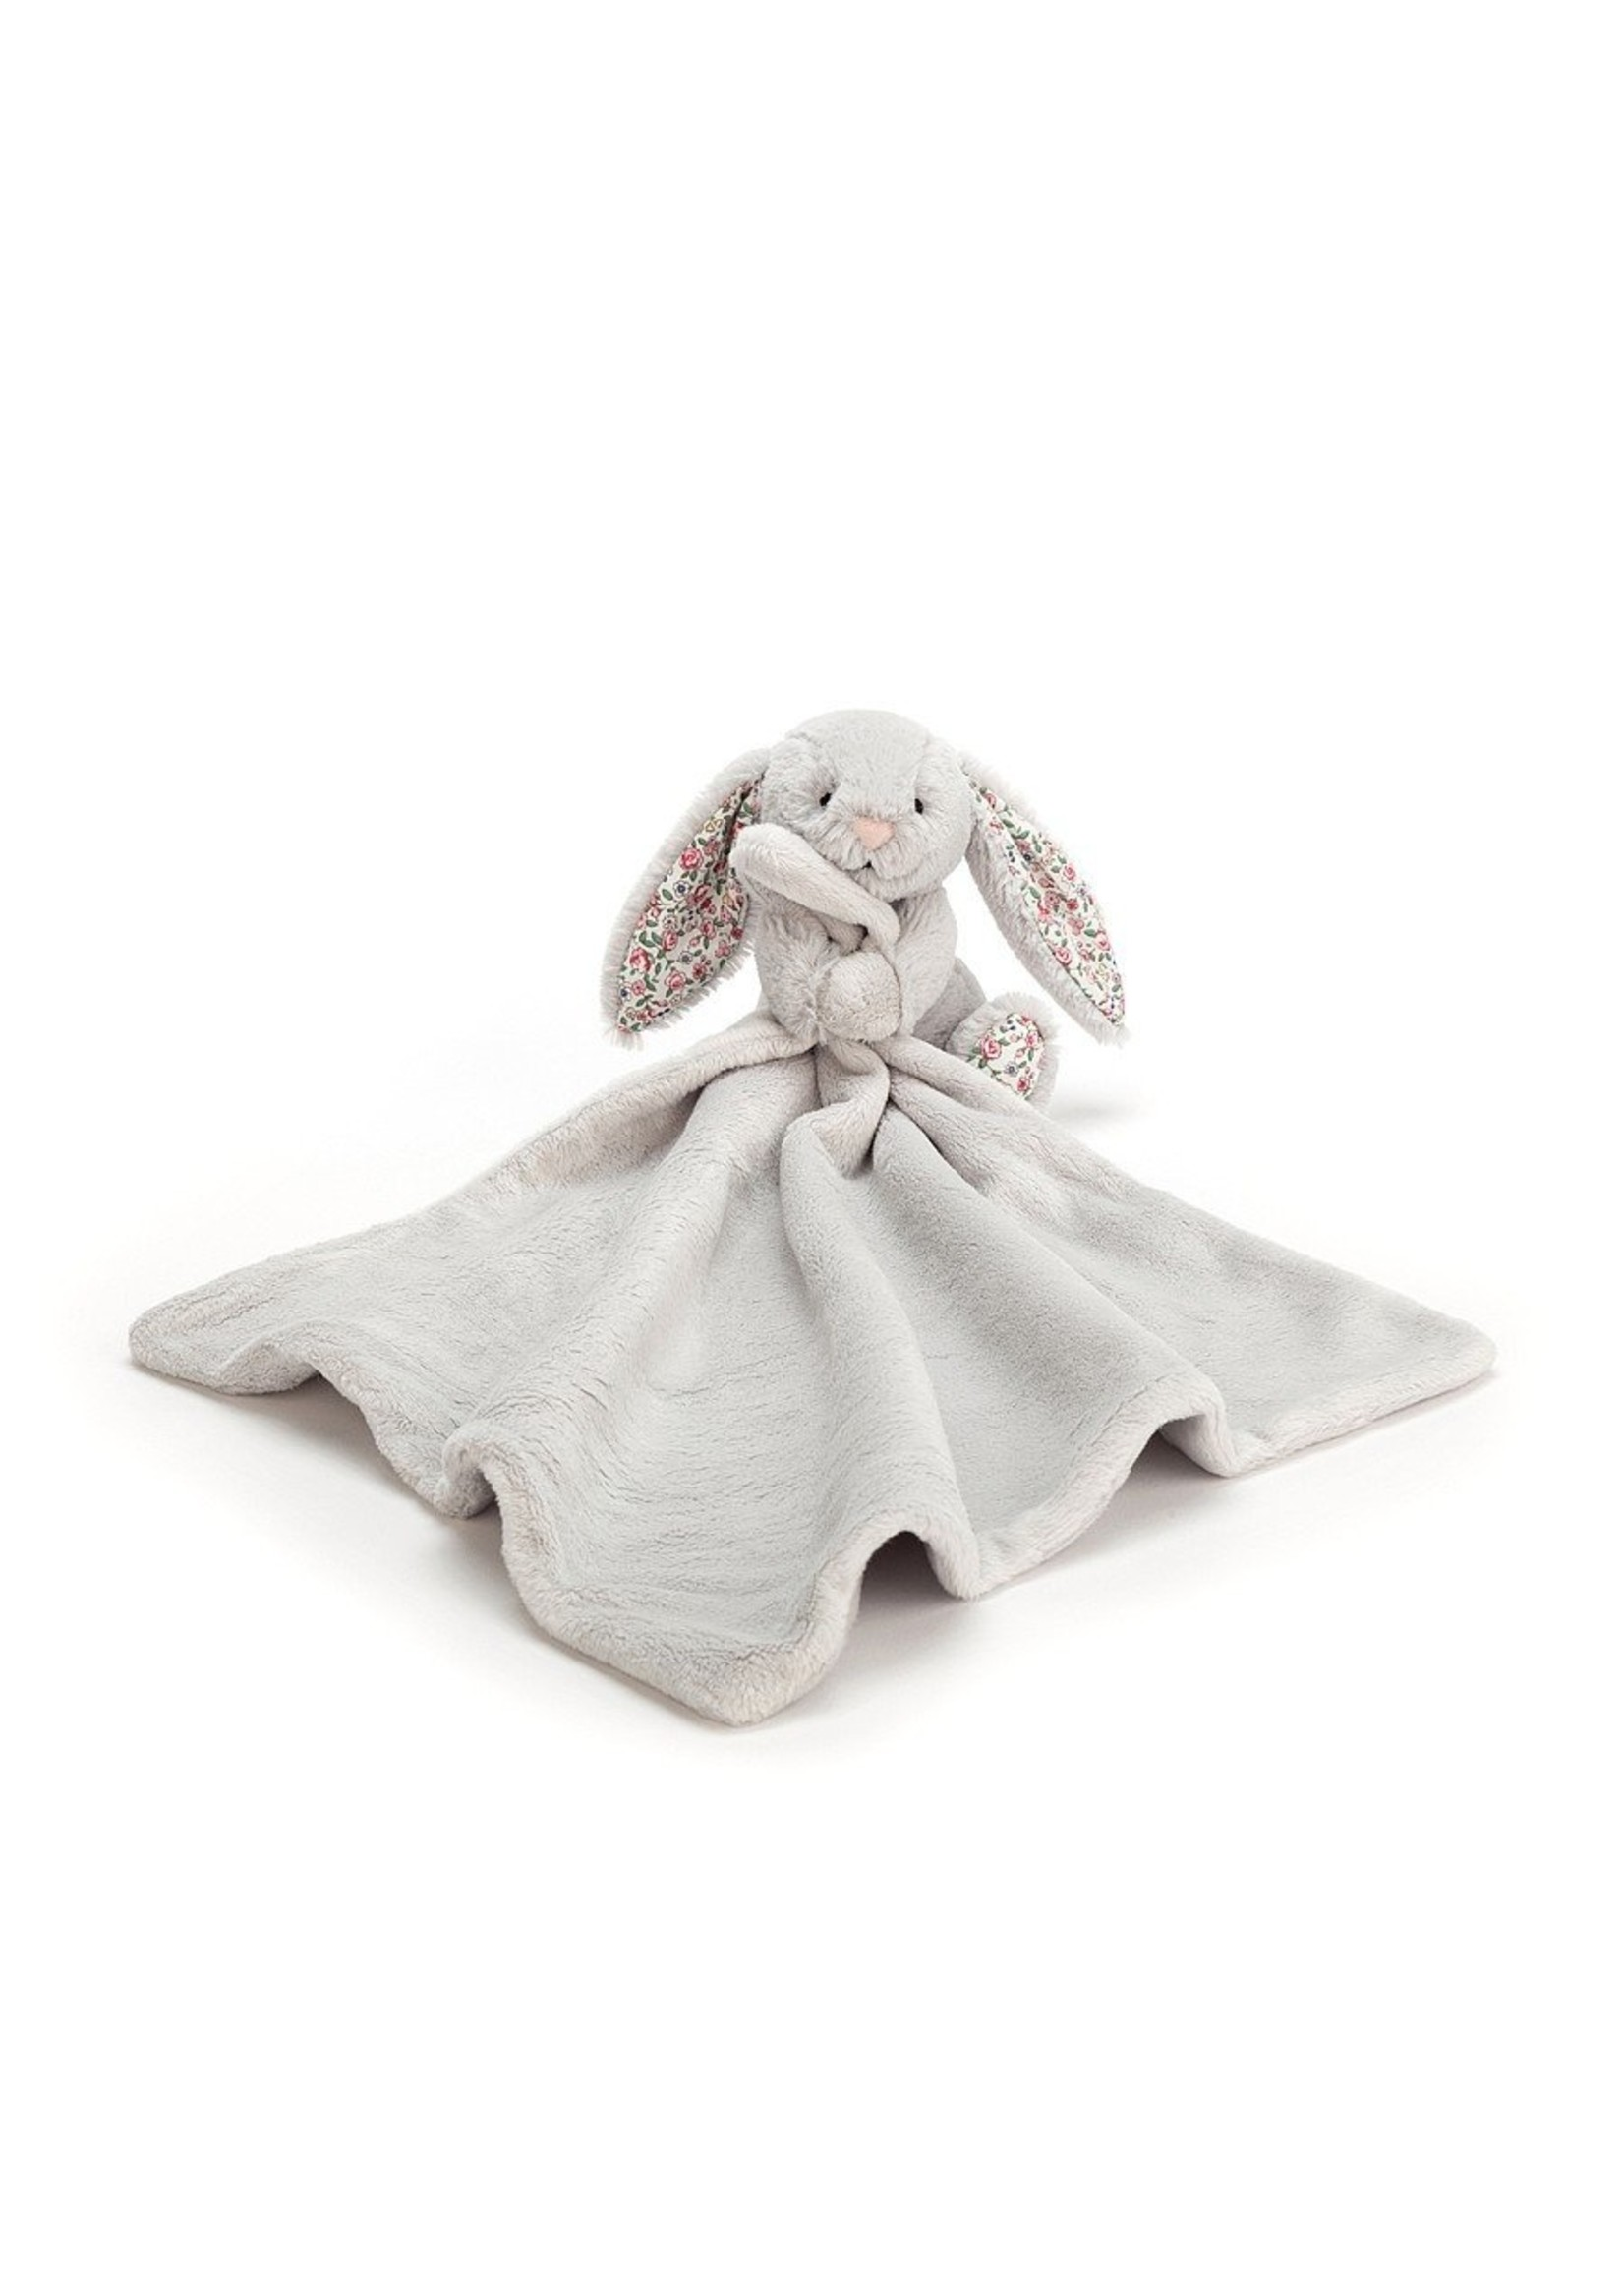 Jellycat Jellycat Silver Bunny Soother